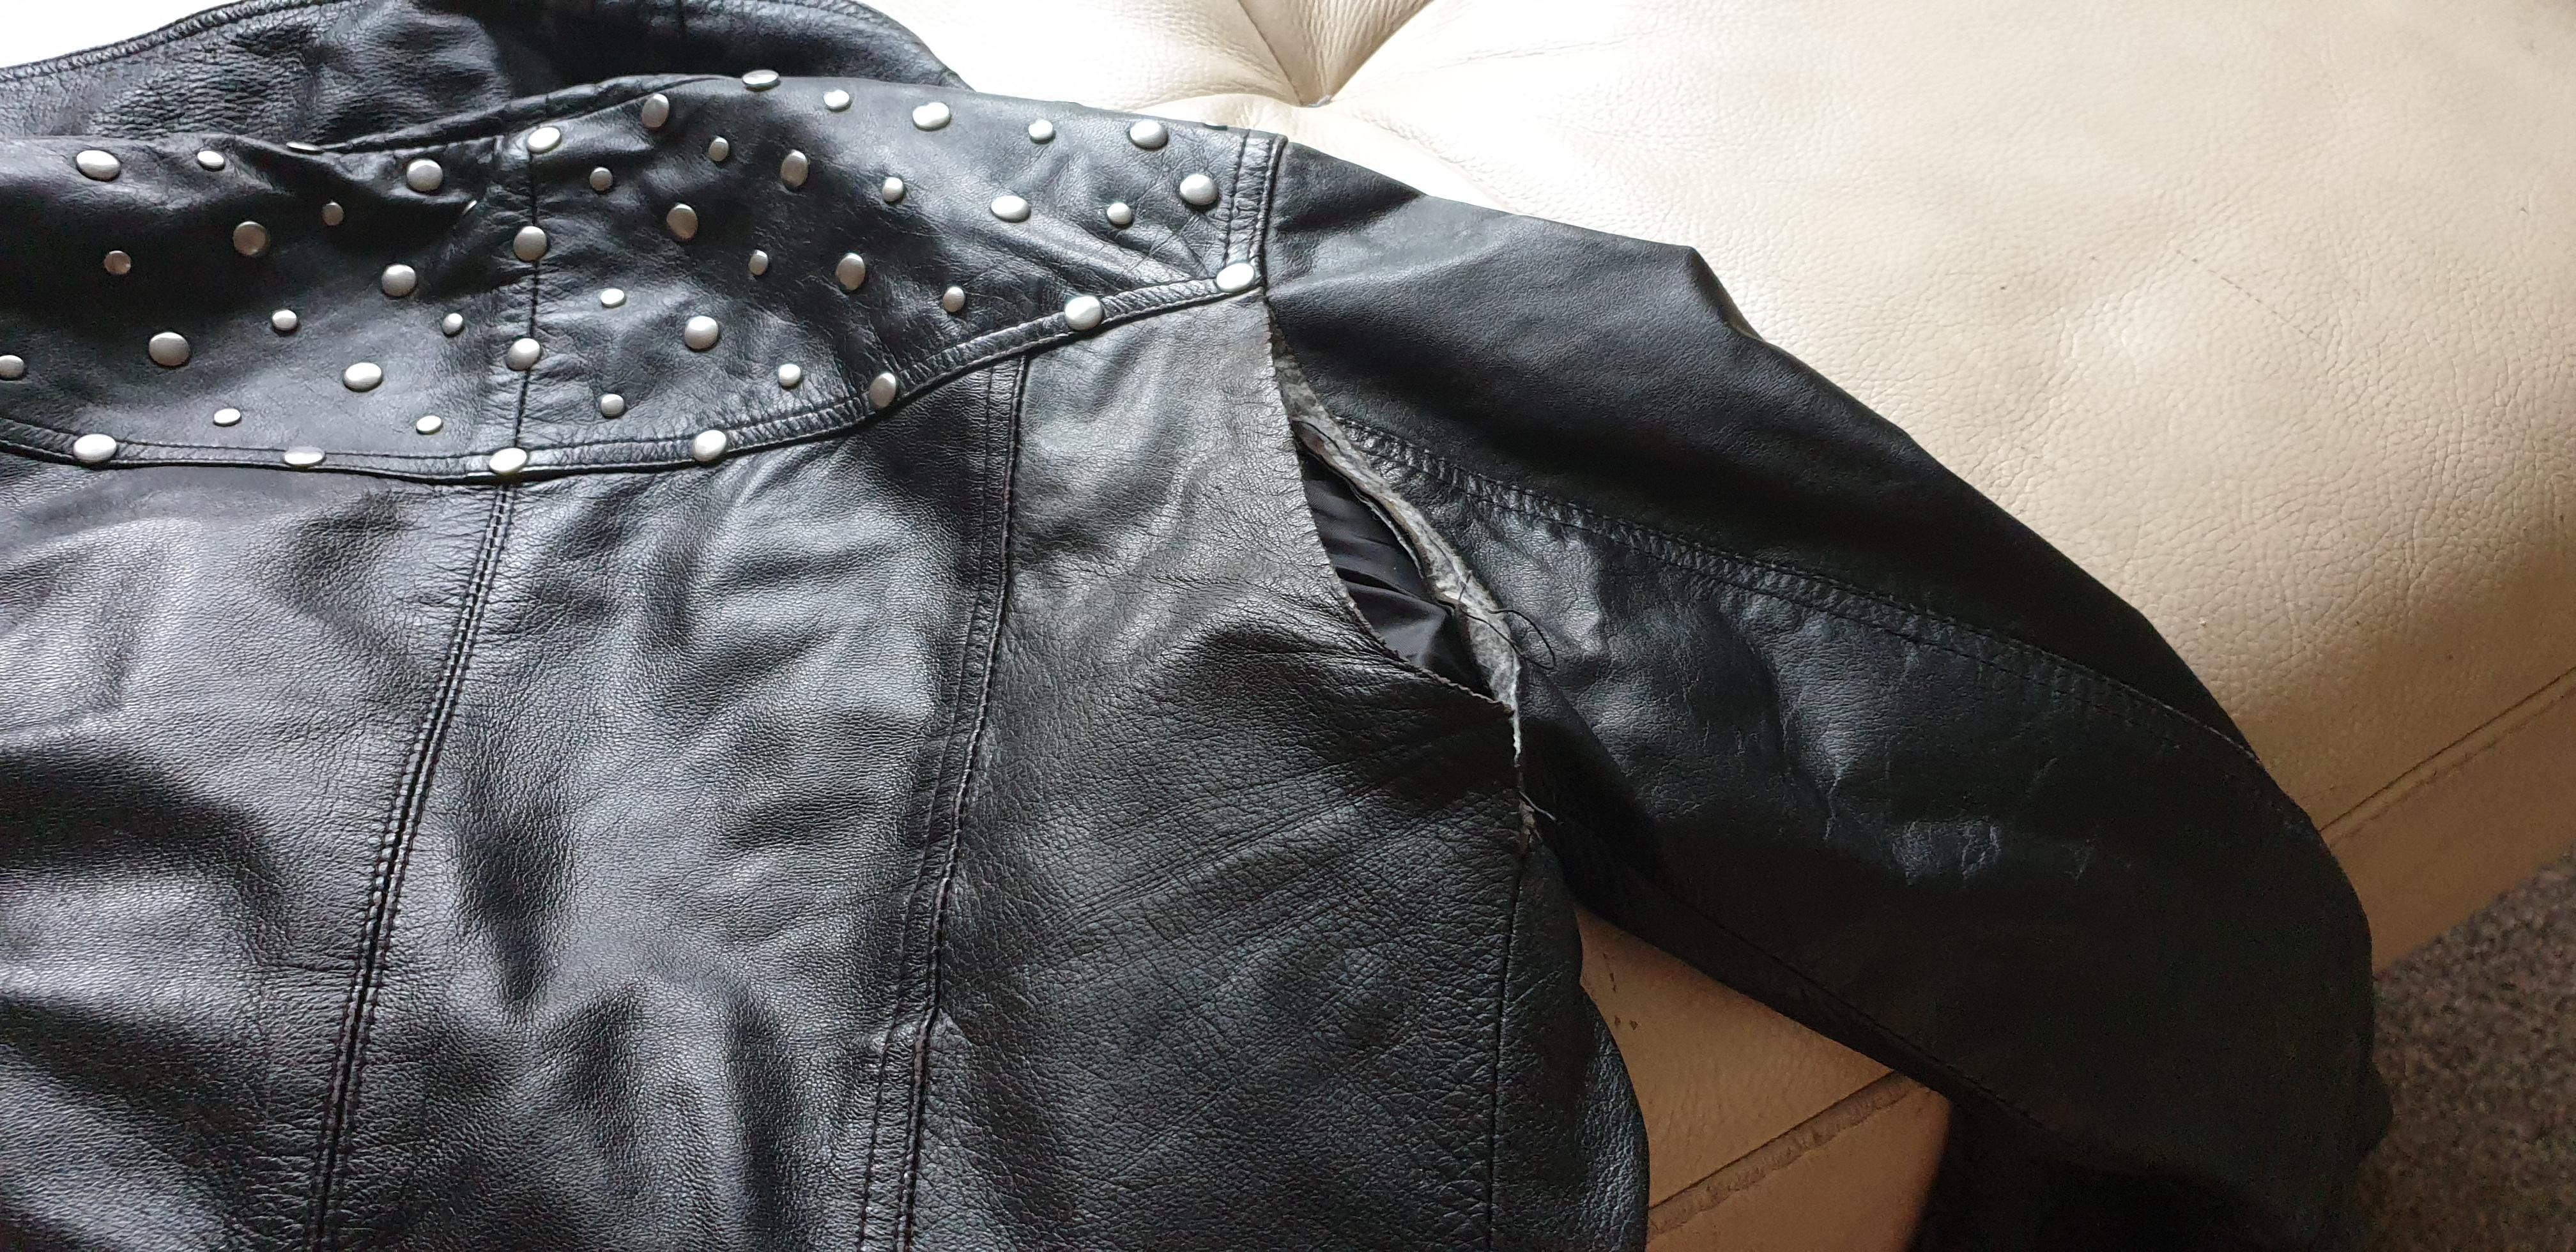 How To Fix A Rip In A Real Leather Jacket With Little To No Sewing Skills Can I Slap On A Rock Band Patch On Real Leather Jacket Ripped Jacket [ 1960 x 4032 Pixel ]